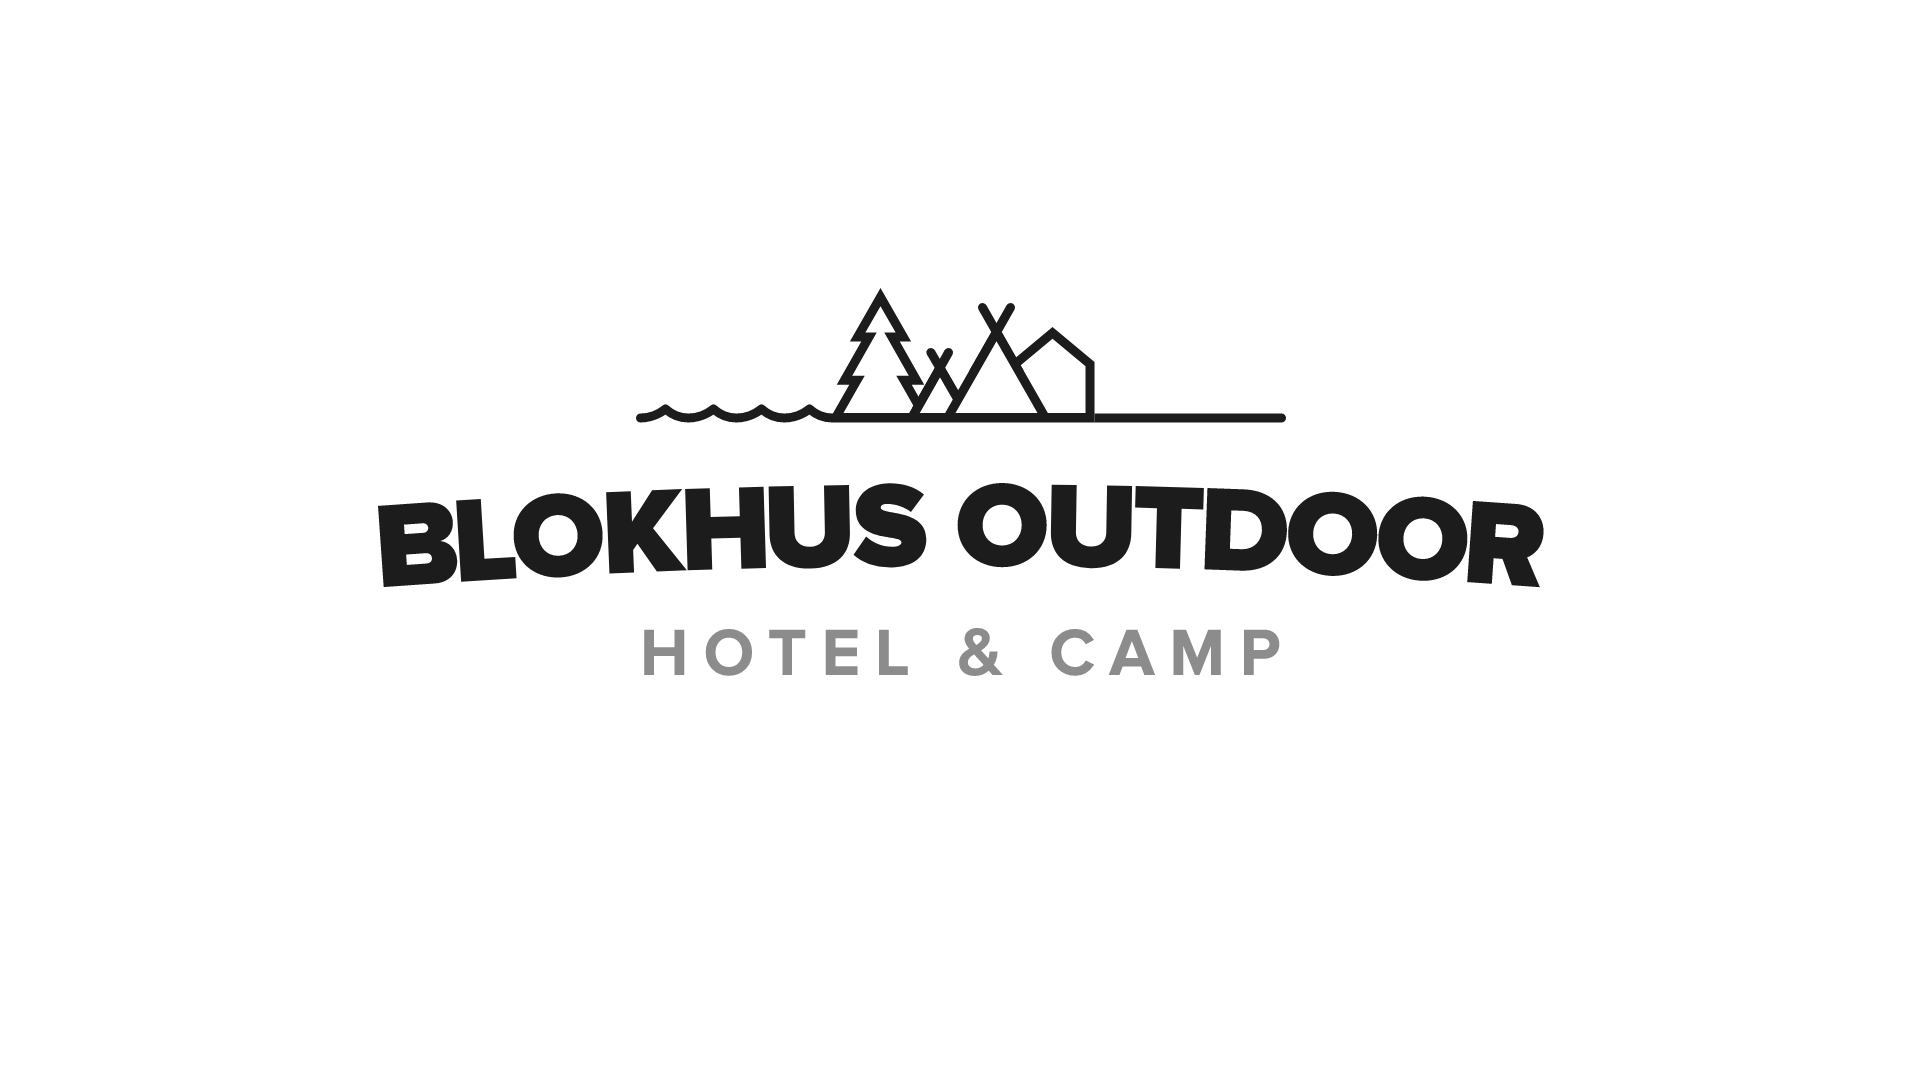 Blokhus Outdoor - Hotel & Camp